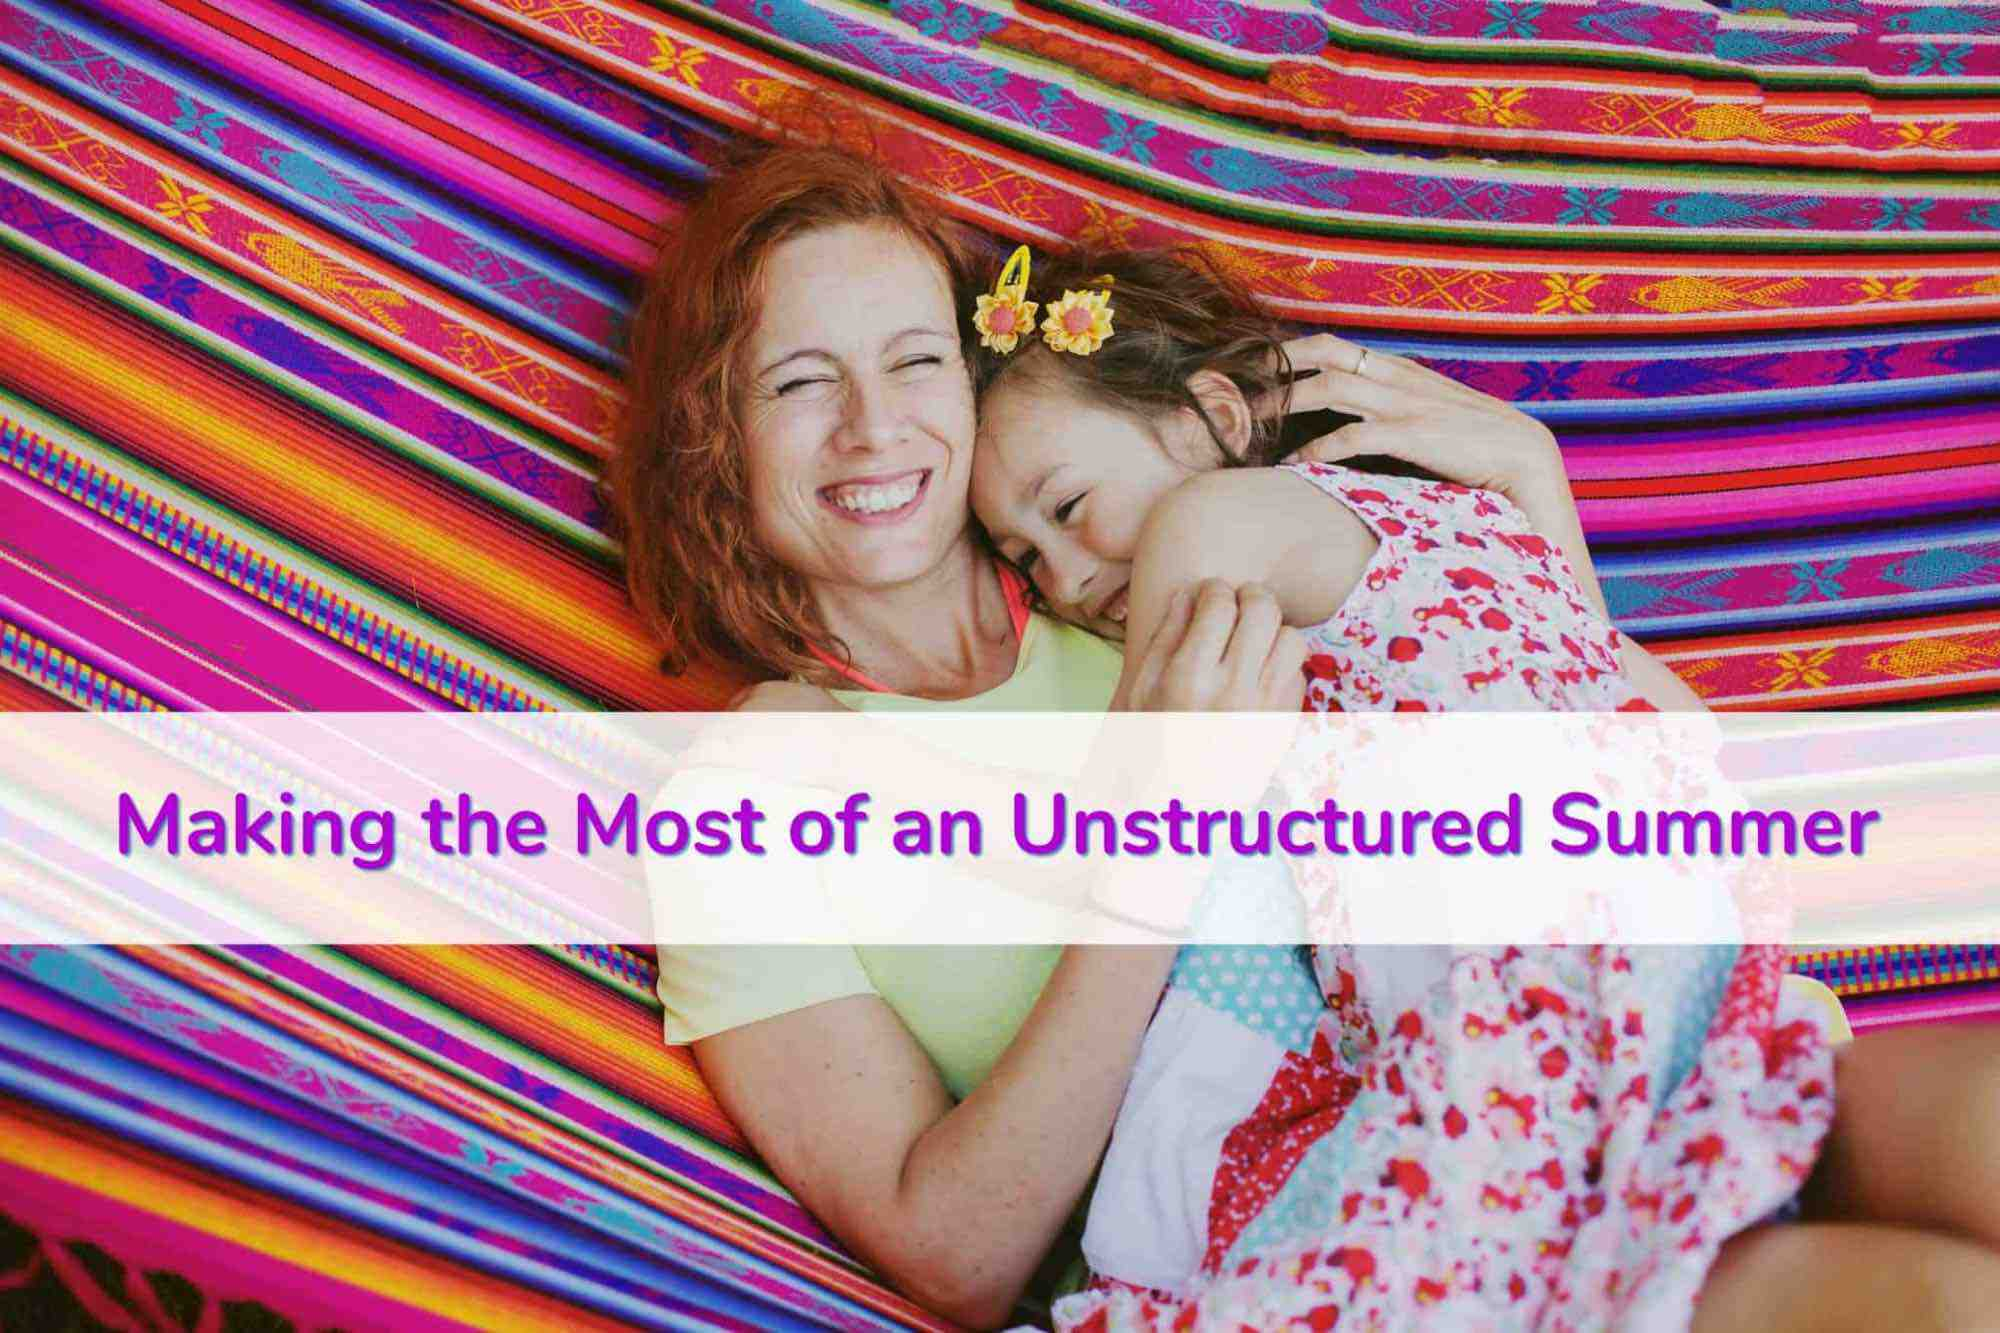 Smiling mom cuddles young daughter in hammock